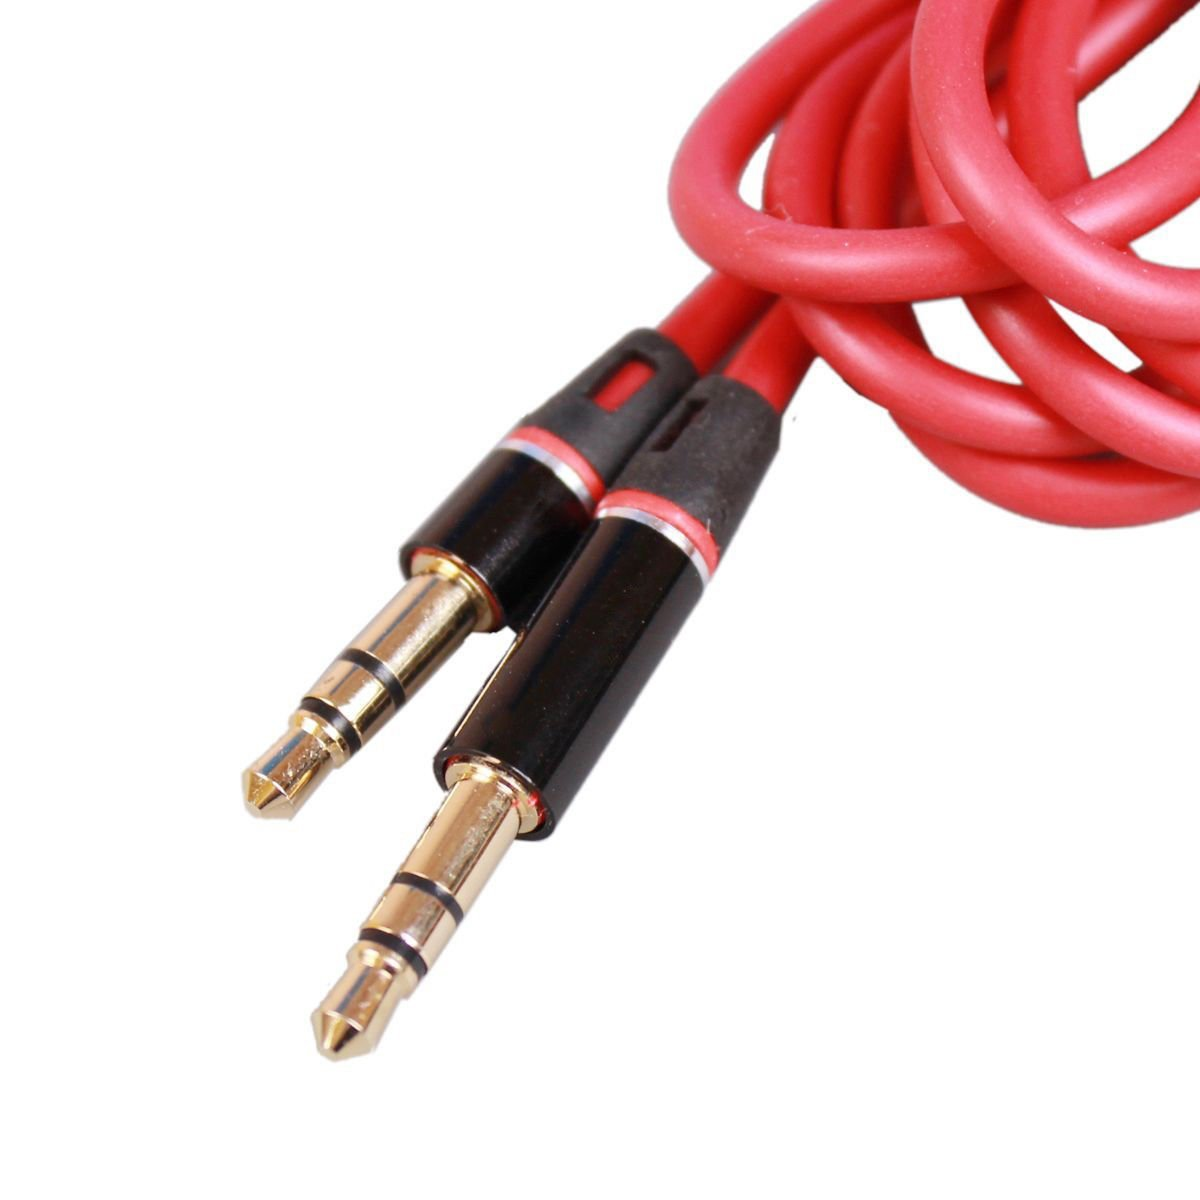 ANices RED Premium 3.5mm 1_8 car aux Audio Cable Cord for Brookstone Soundshield Headphone by ANiceS